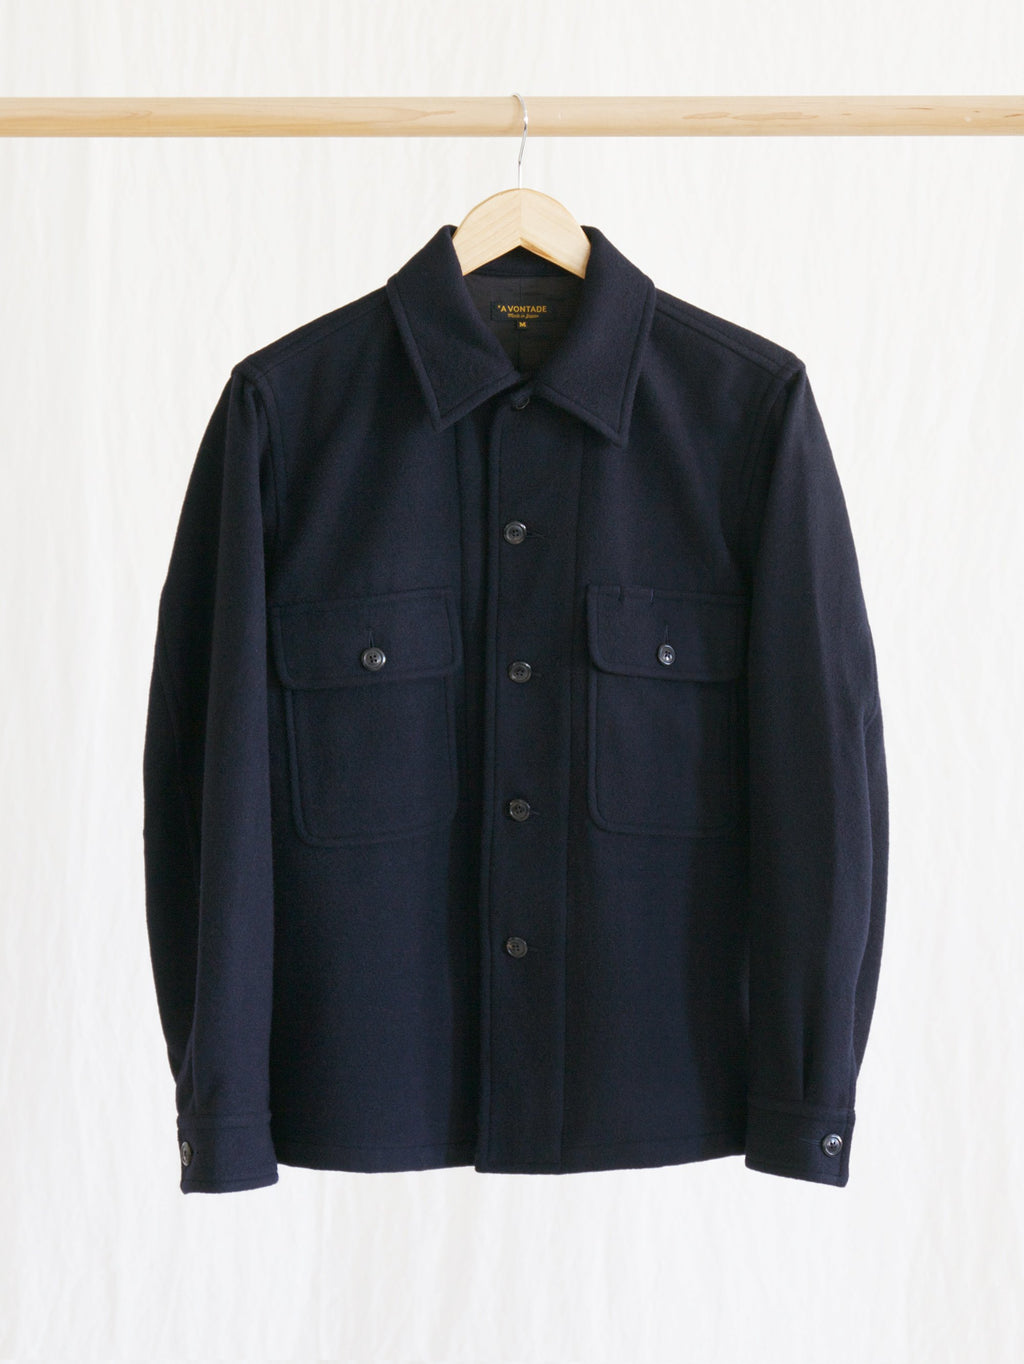 Namu Shop - A Vontade Melton Wool Shirt Jacket